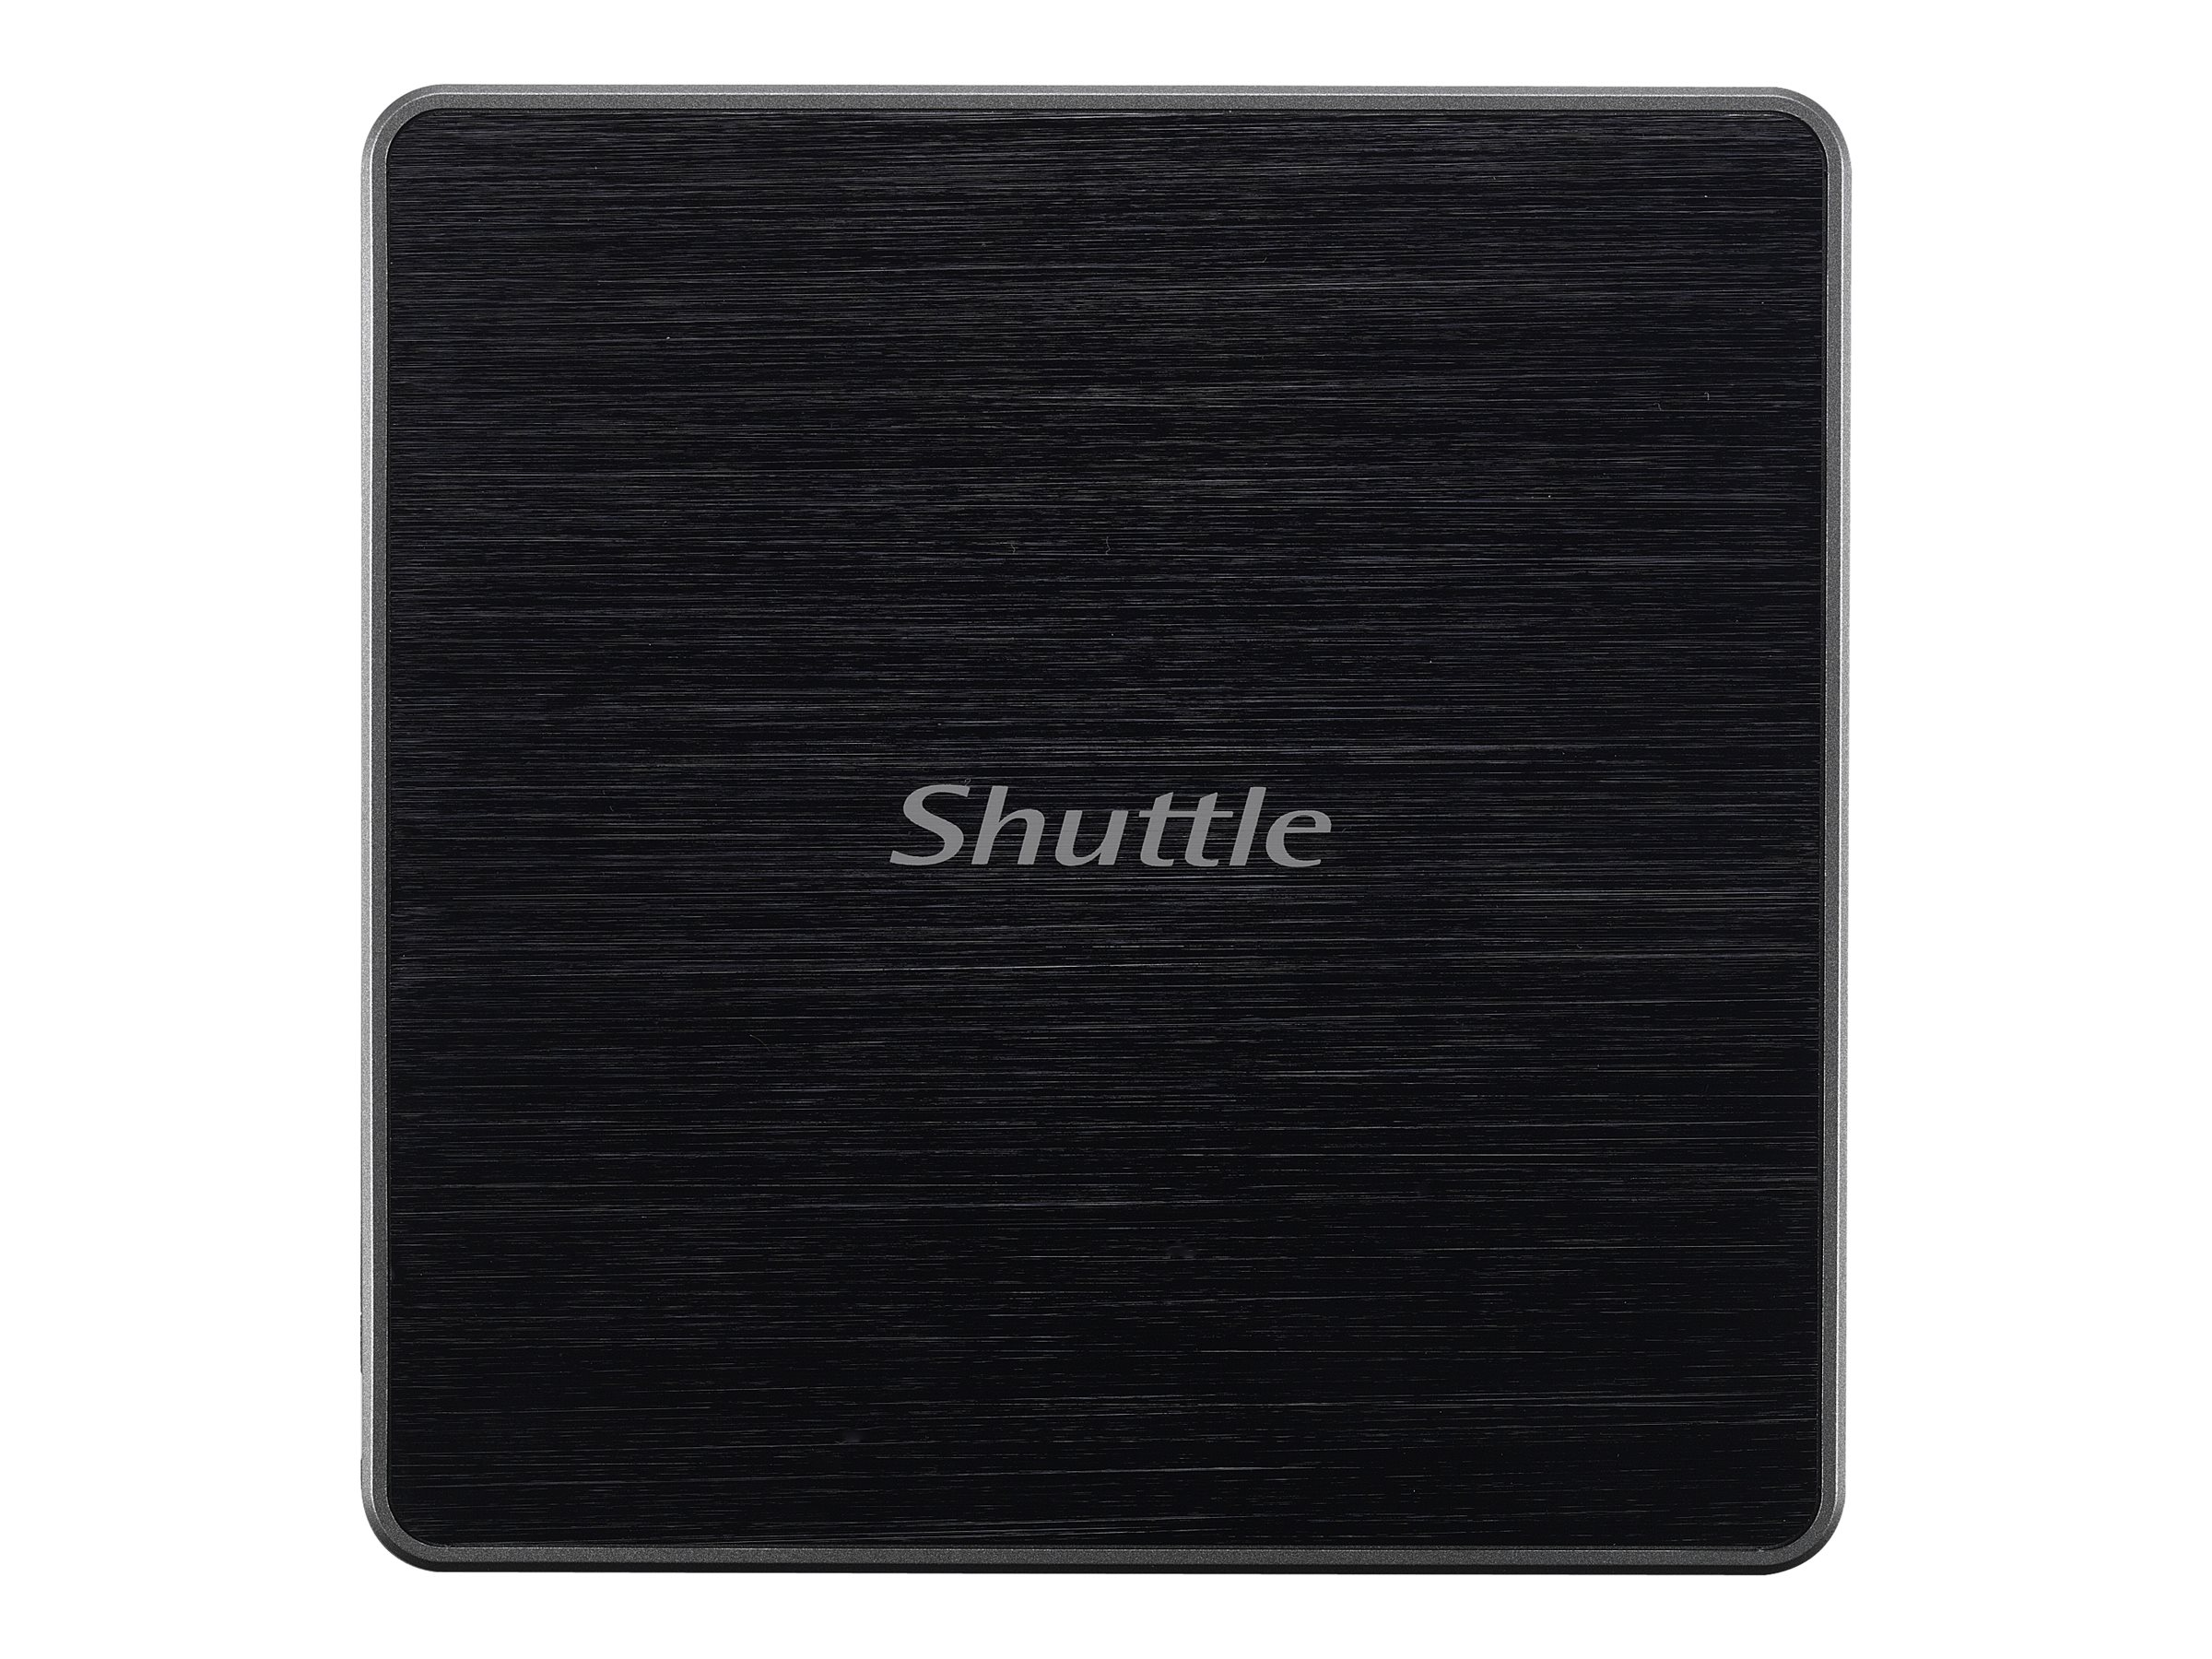 Shuttle XPC nano NC1010XA - Mini-PC - Celeron 4205U / 1.8 GHz ULV